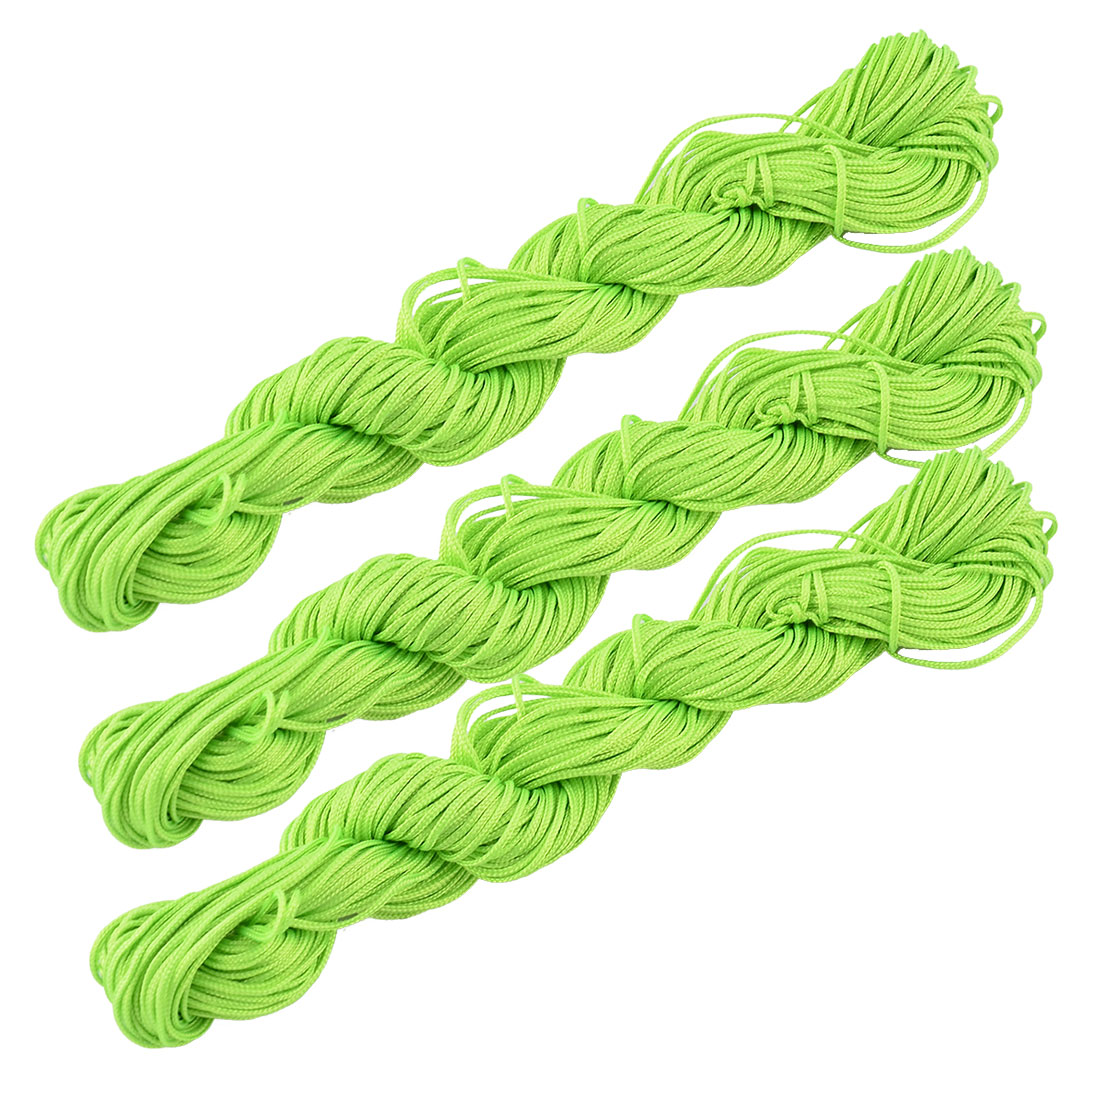 Polyester DIY Chinese Knot Bracelet Rattail Cord Rope Light Green 31 Yards 3pcs